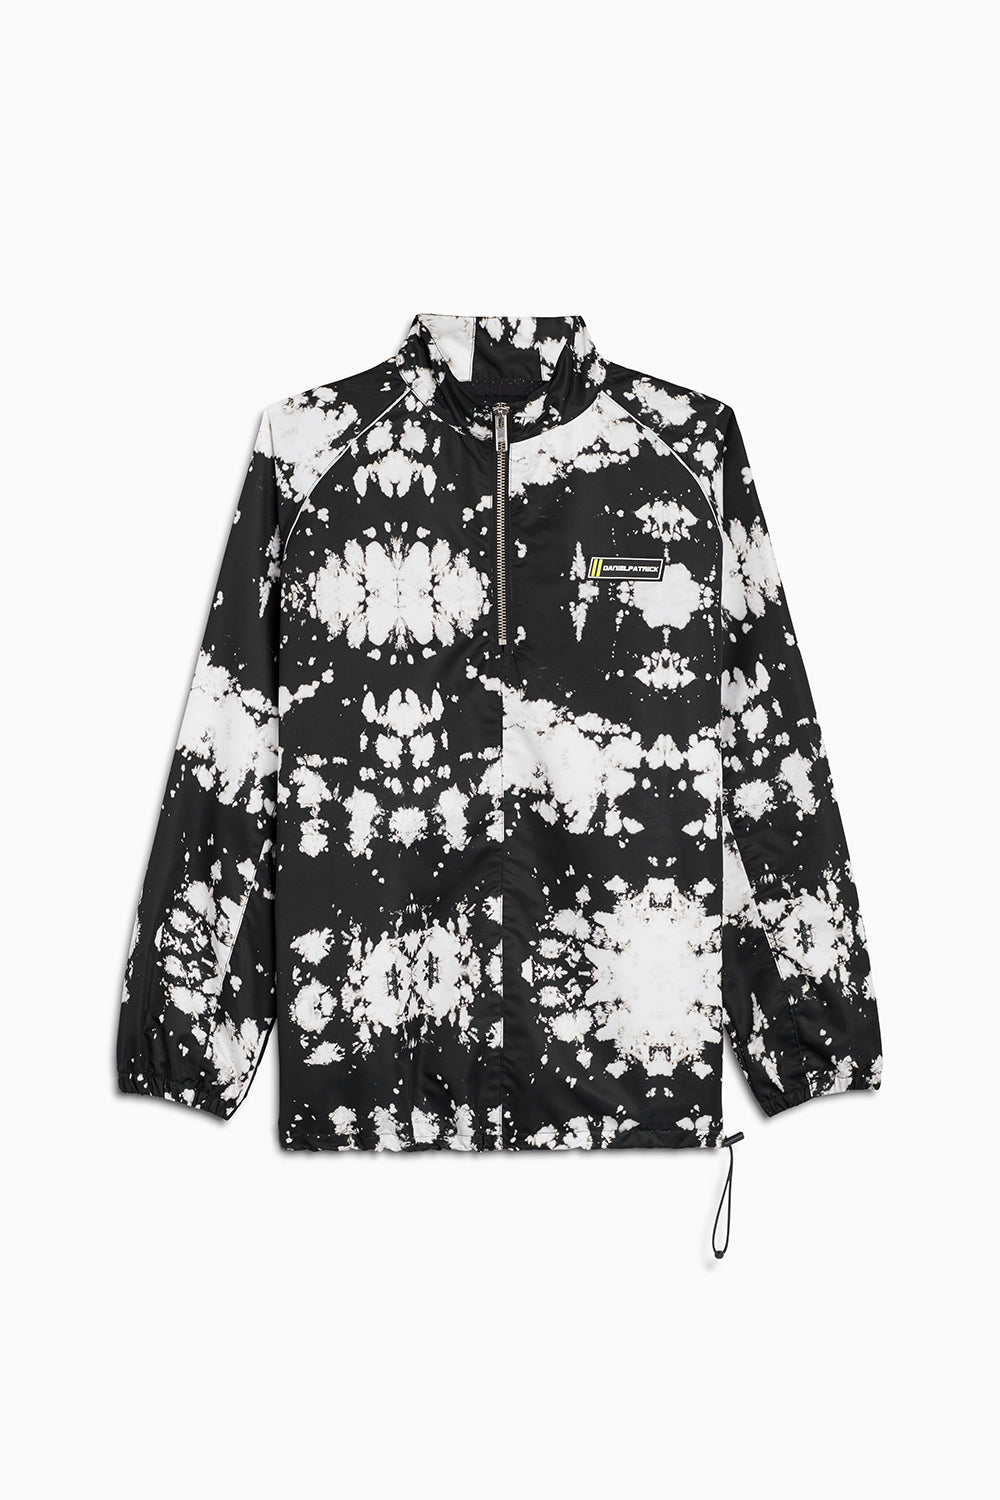 pullover batting jacket / white acid